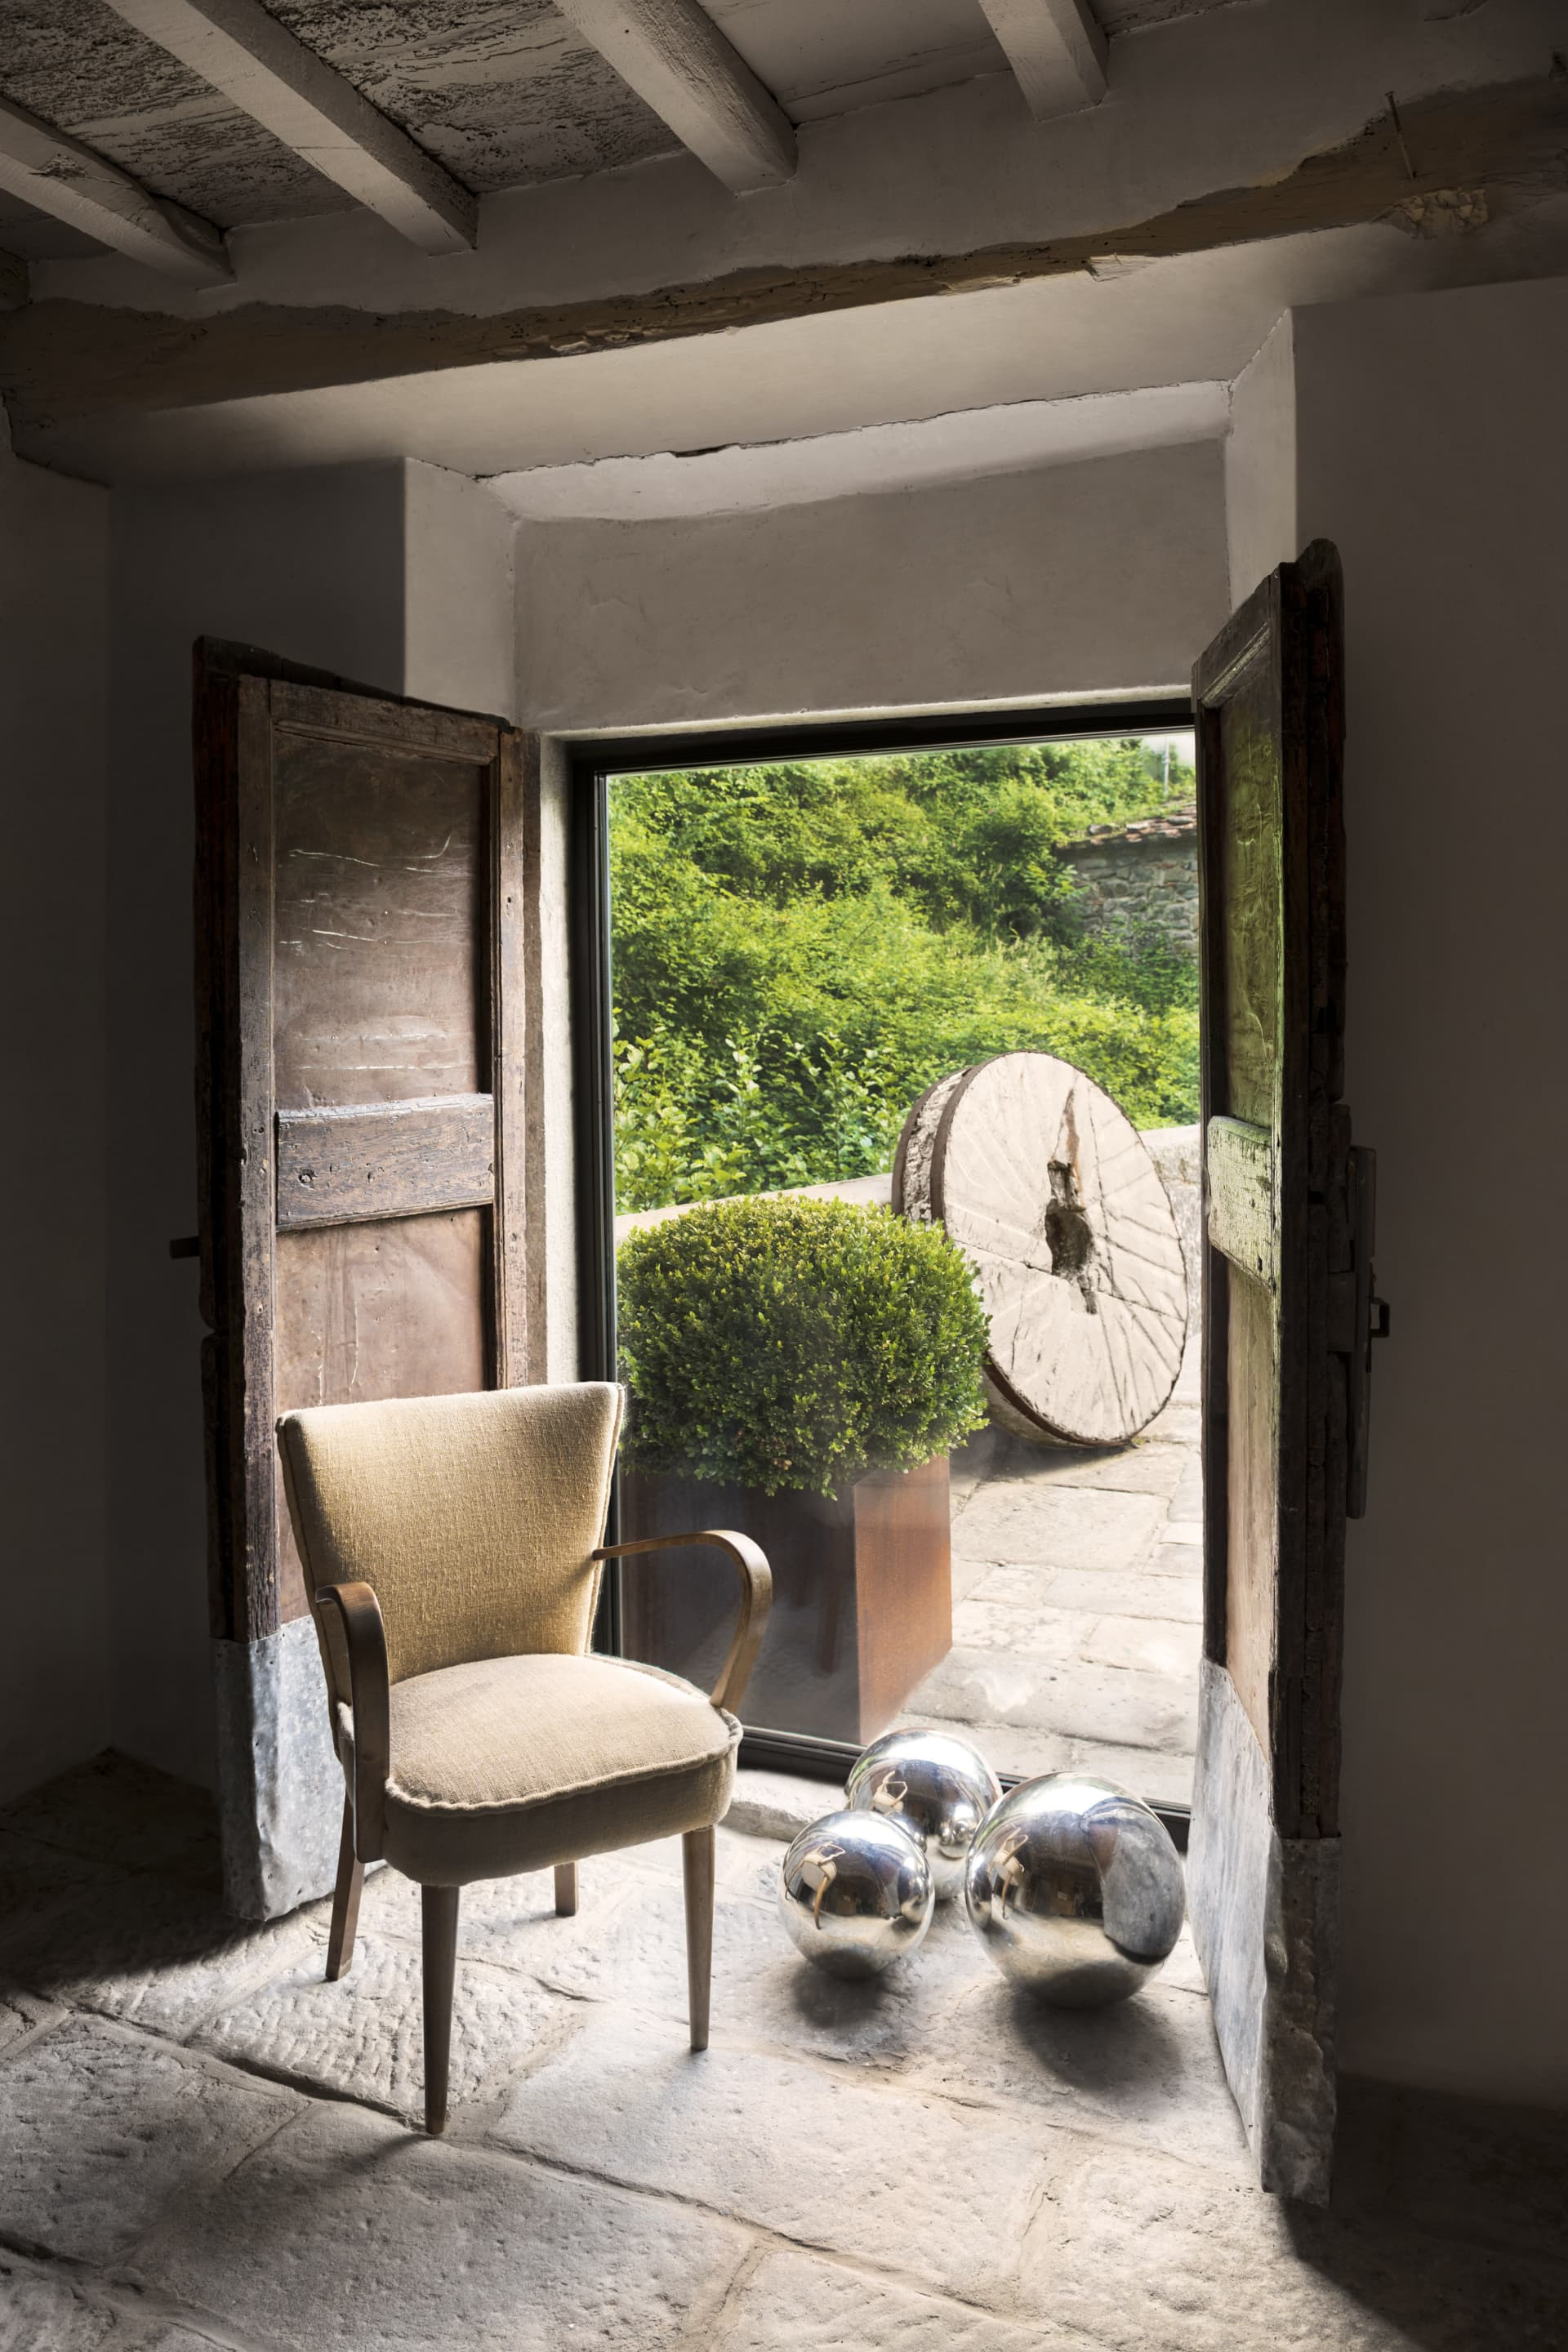 A reading room overlooking the bridge. The 50s chair has been restored by Laura. On the ground, mirrored spheres amplify the light. Outside, in addition to the boxwood vase, you can see a mill of the mill used as a decorative element.